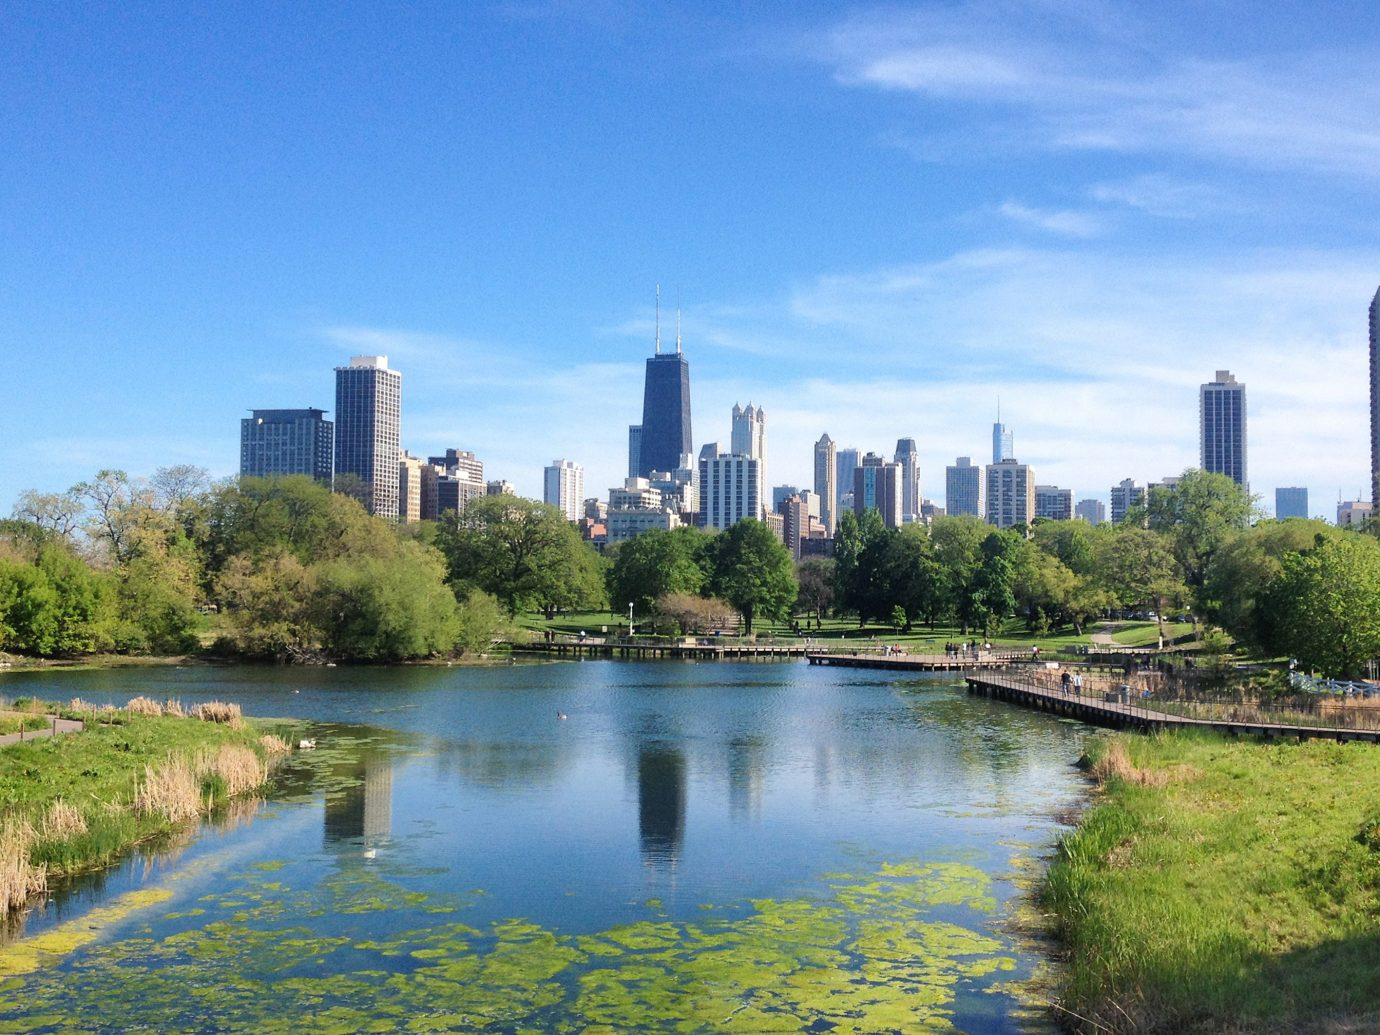 Romance Trip Ideas outdoor grass sky water tree River skyline geographical feature City landmark reflection human settlement cityscape Nature Lake waterway landscape park skyscraper flower panorama surrounded